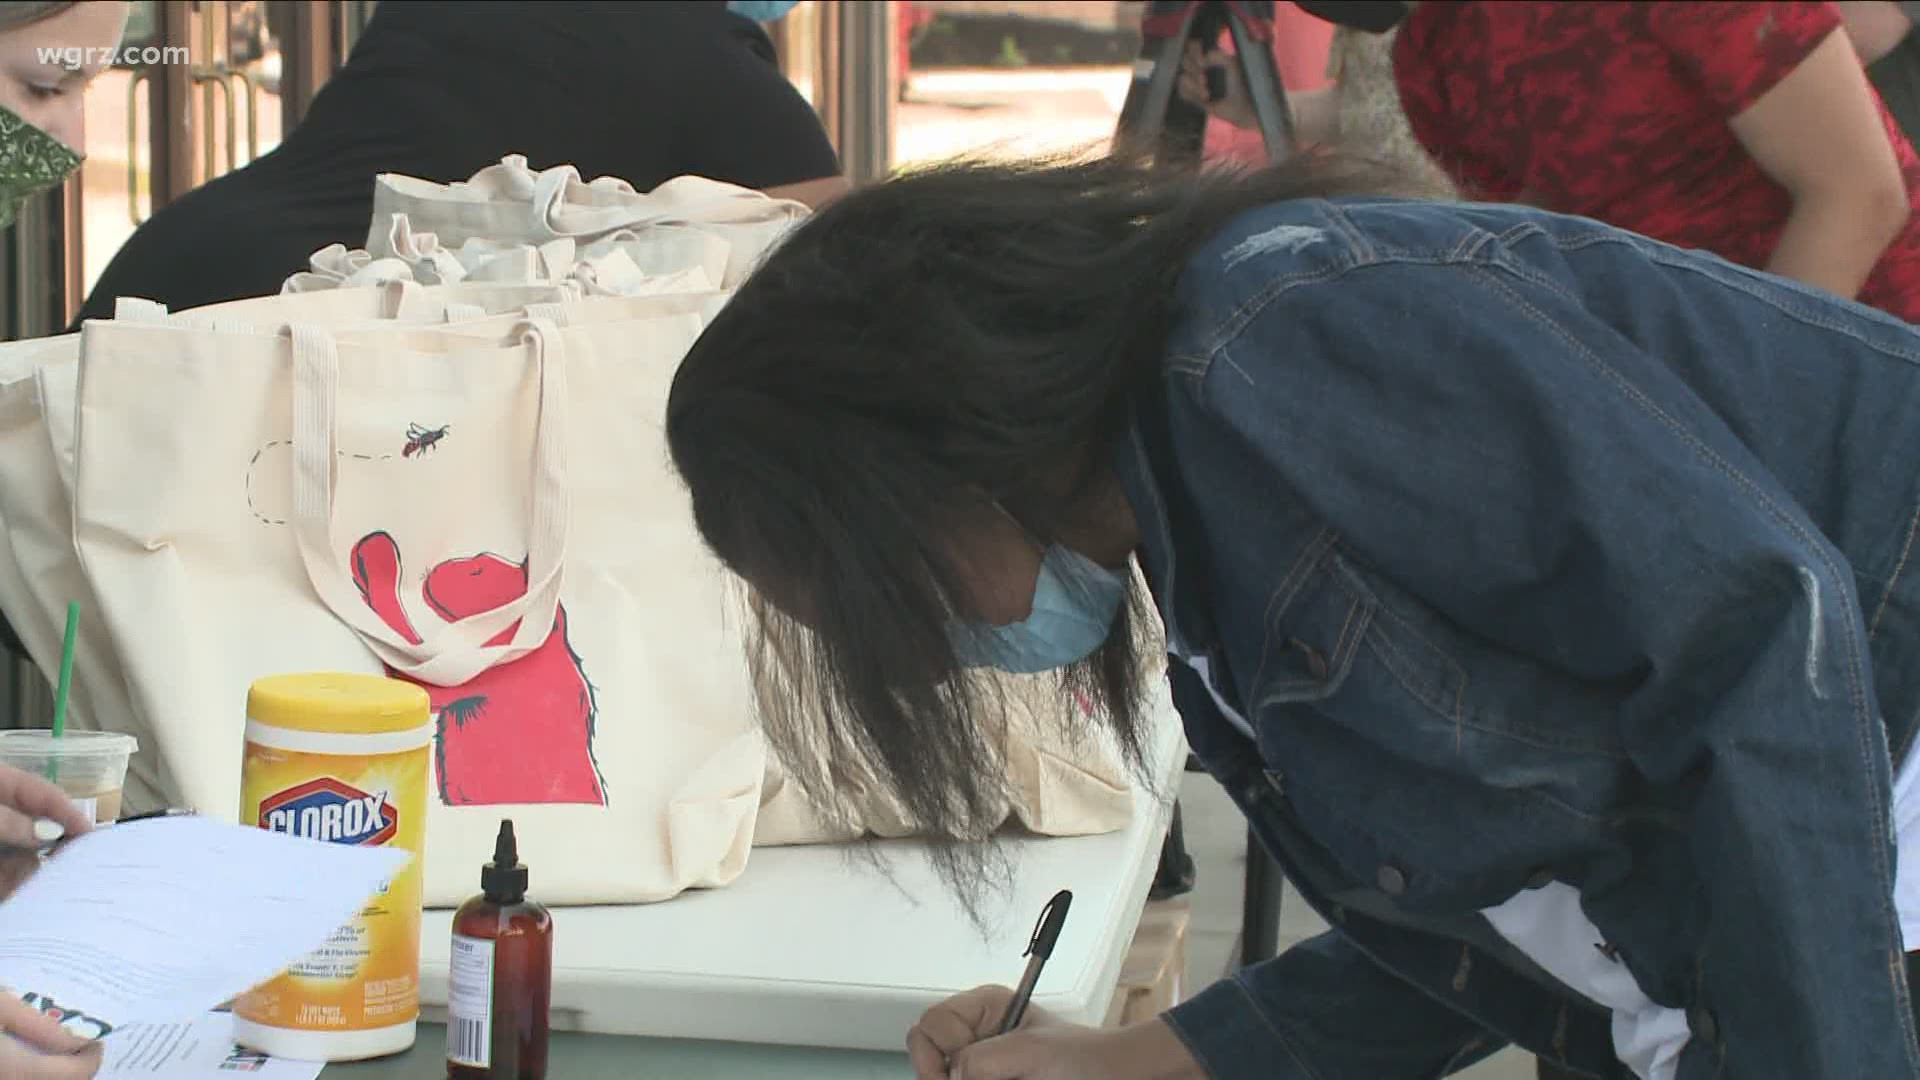 26 000 In Community Support Fuels Program To Give Art Kits To Students Wgrz Com